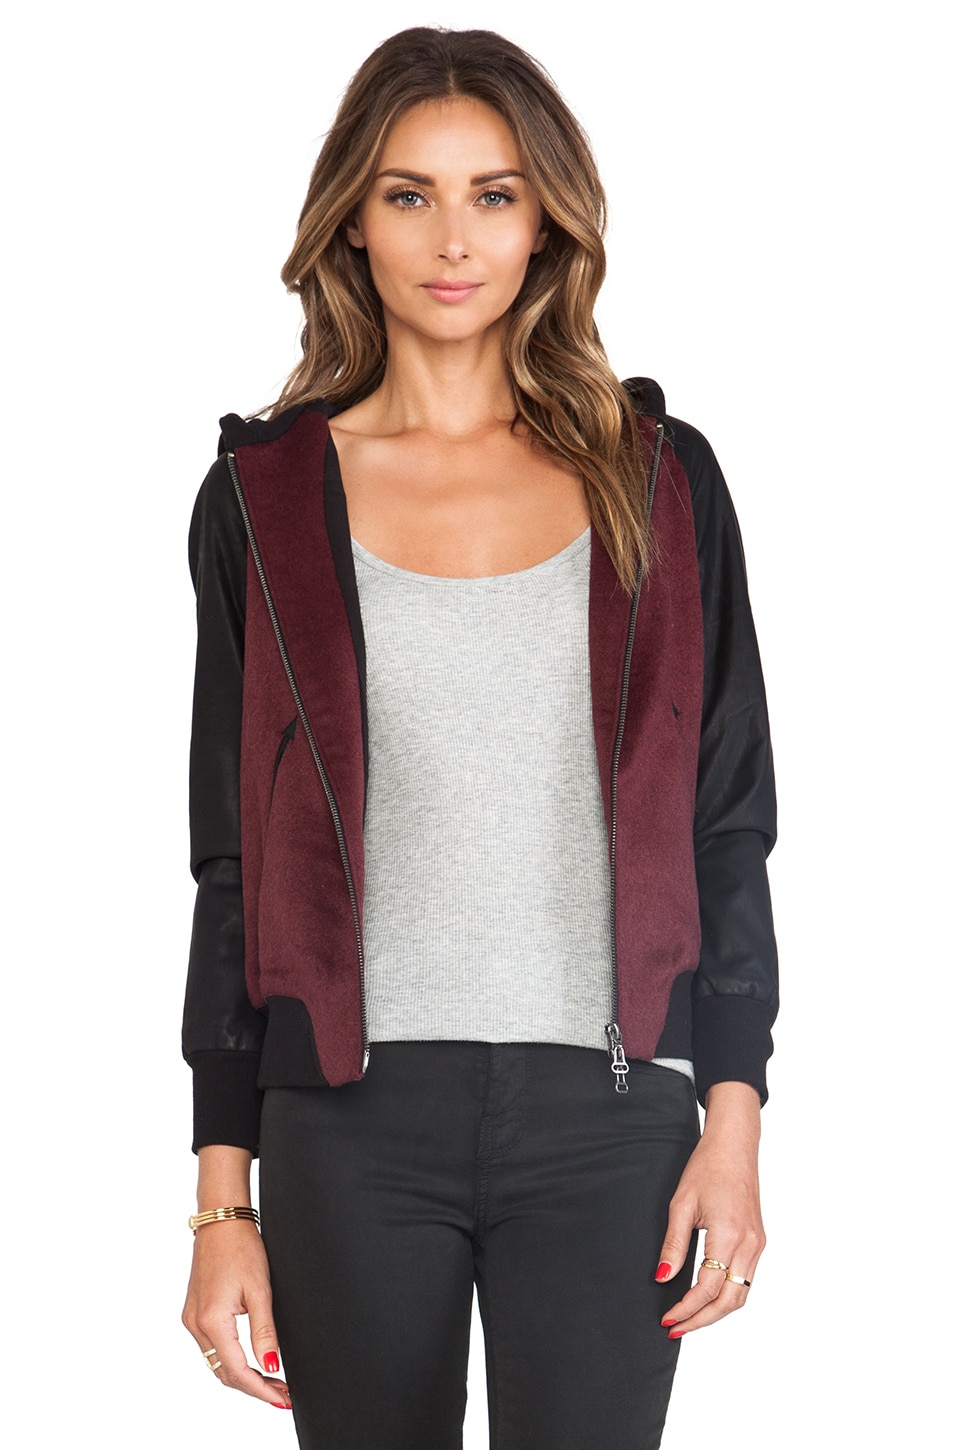 Dolce Vita Toniece Faux Leather Jacket in Maroon